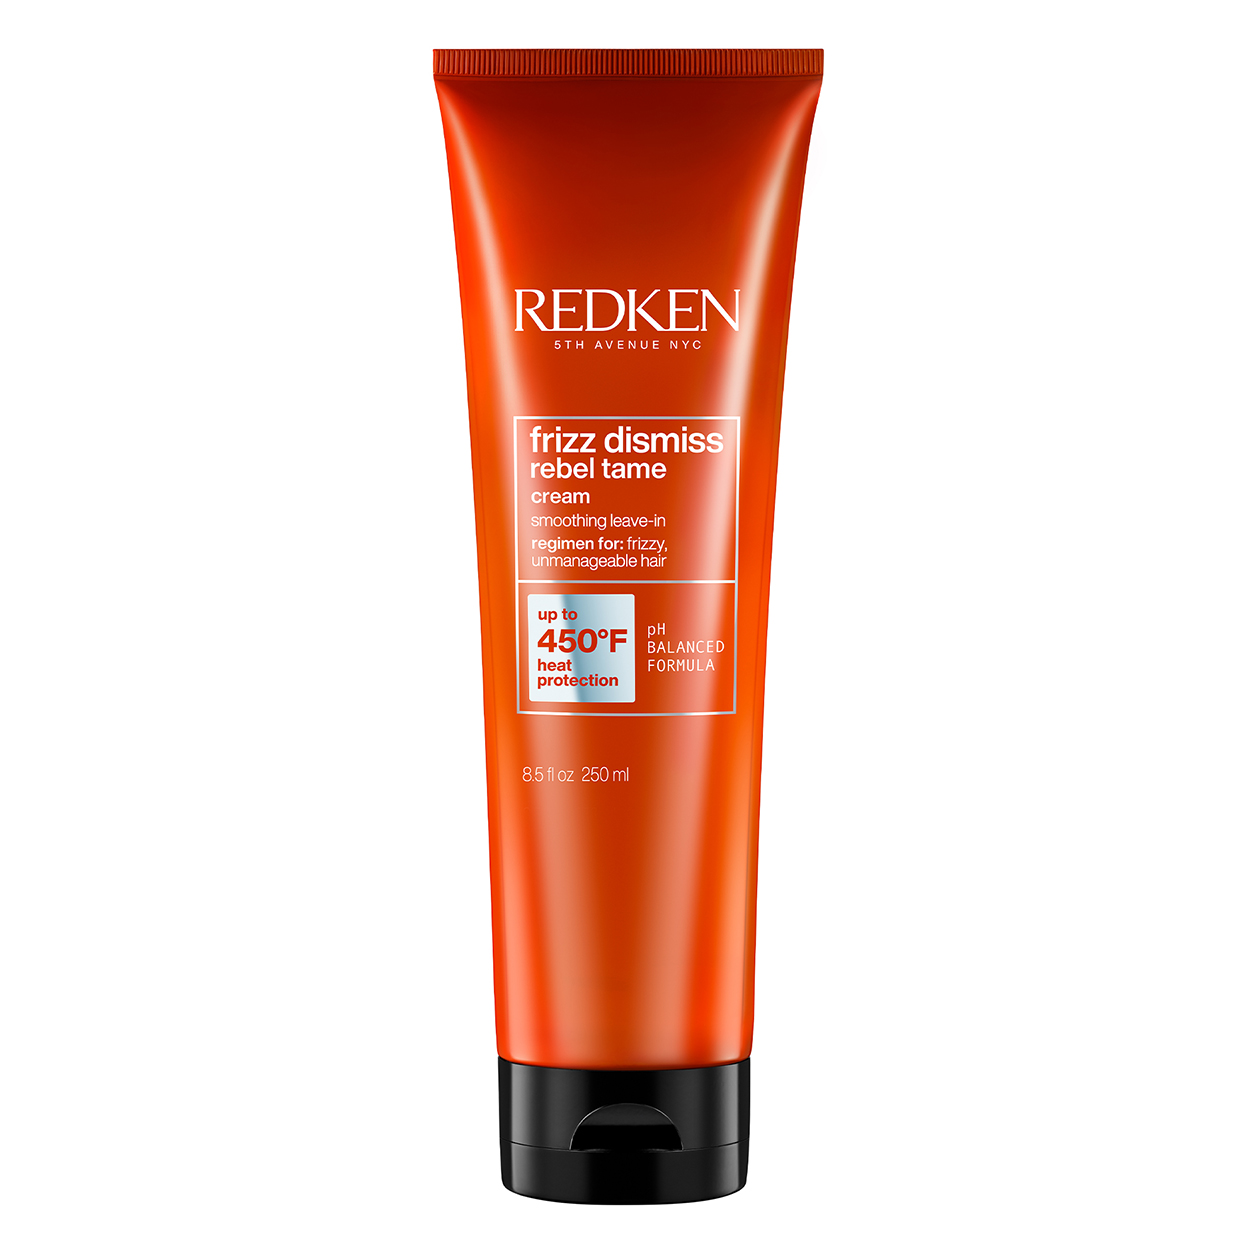 Redken 2018 Product Frizz Dismiss Rebel Tame Red 1260x1600.jpg